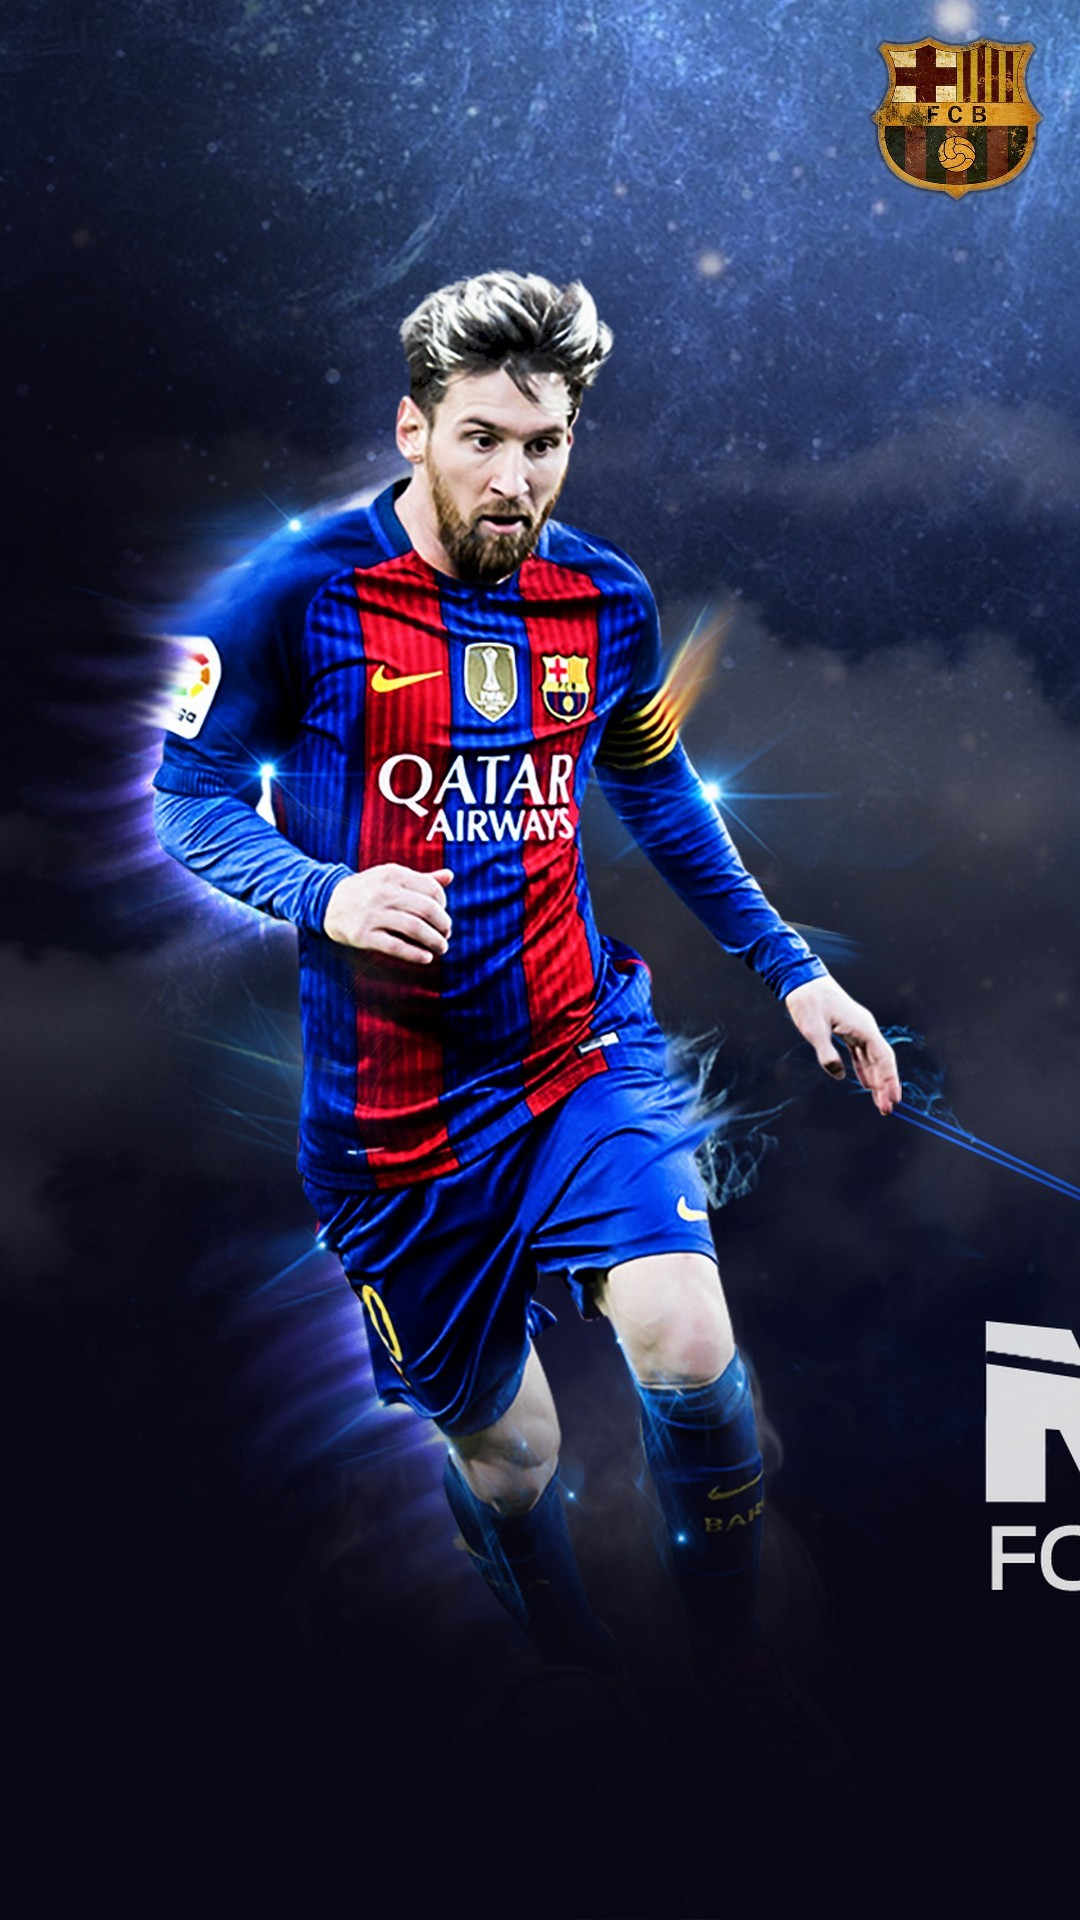 download Messi iPhone 8 Wallpaper 2019 Football Wallpaper 1080x1920